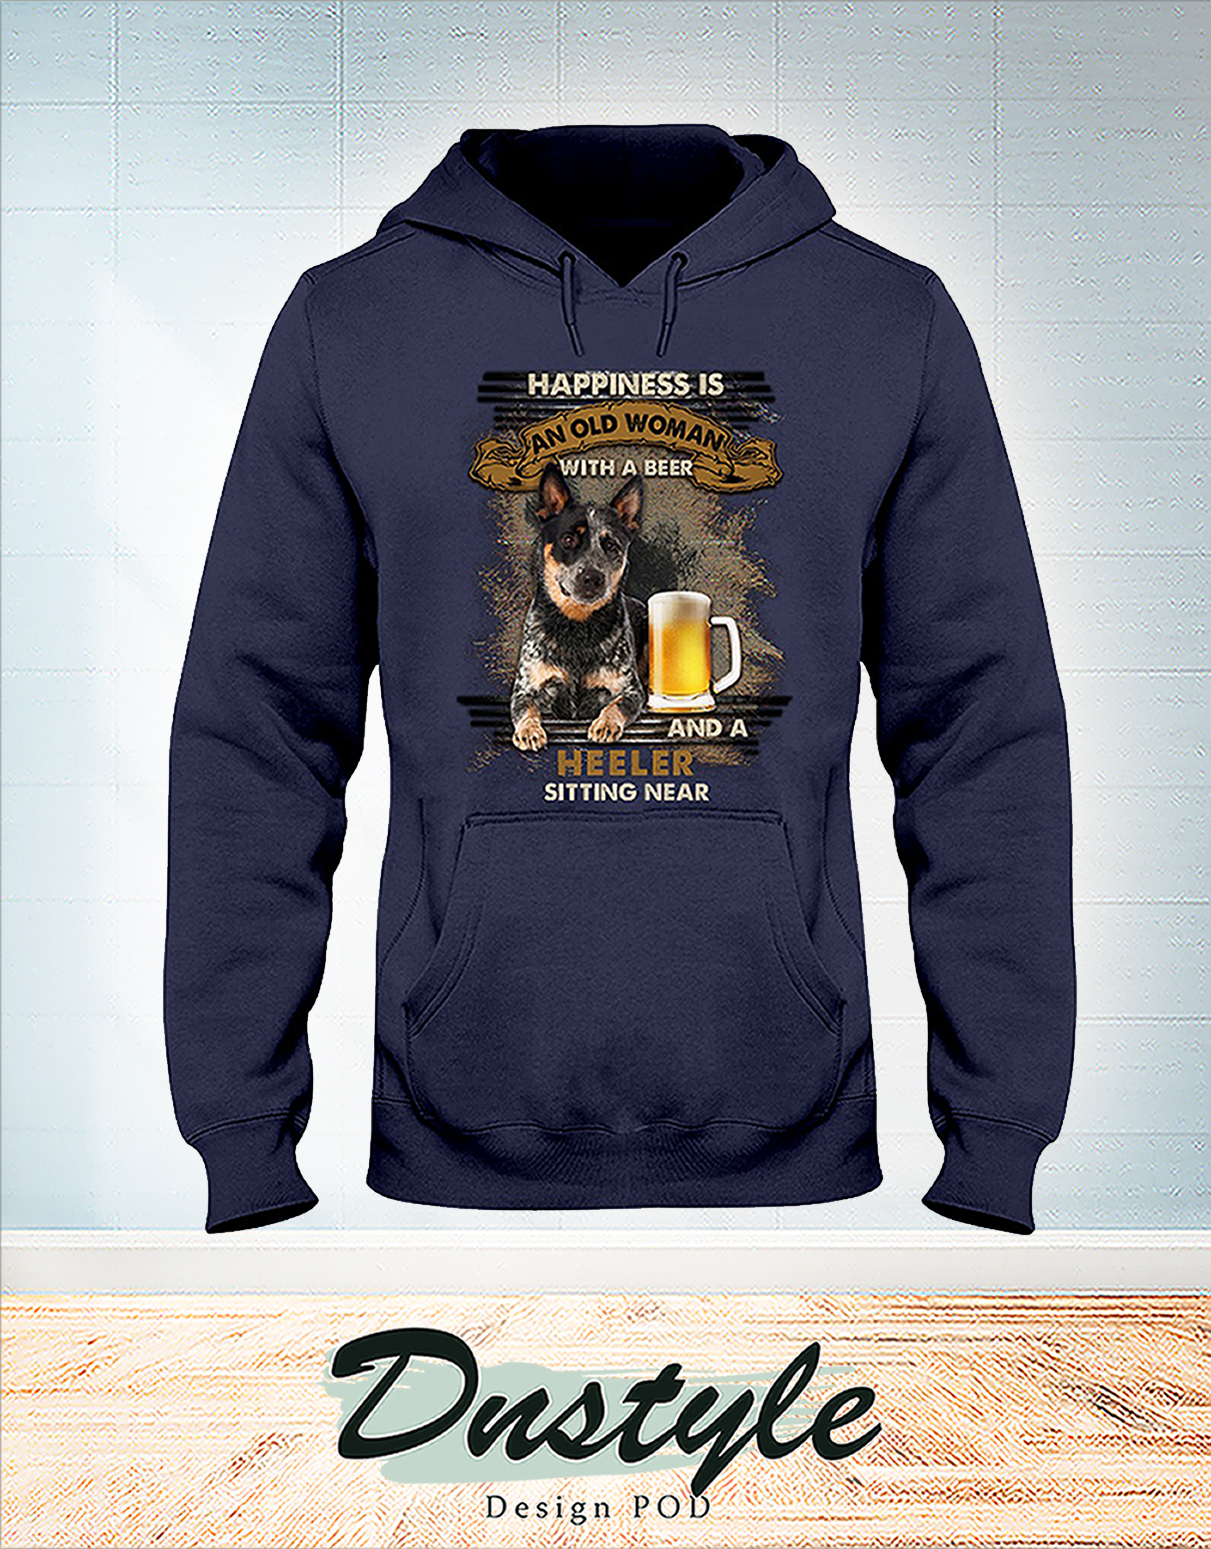 Happiness is an old man with a beer and a heeler sitting near hoodie